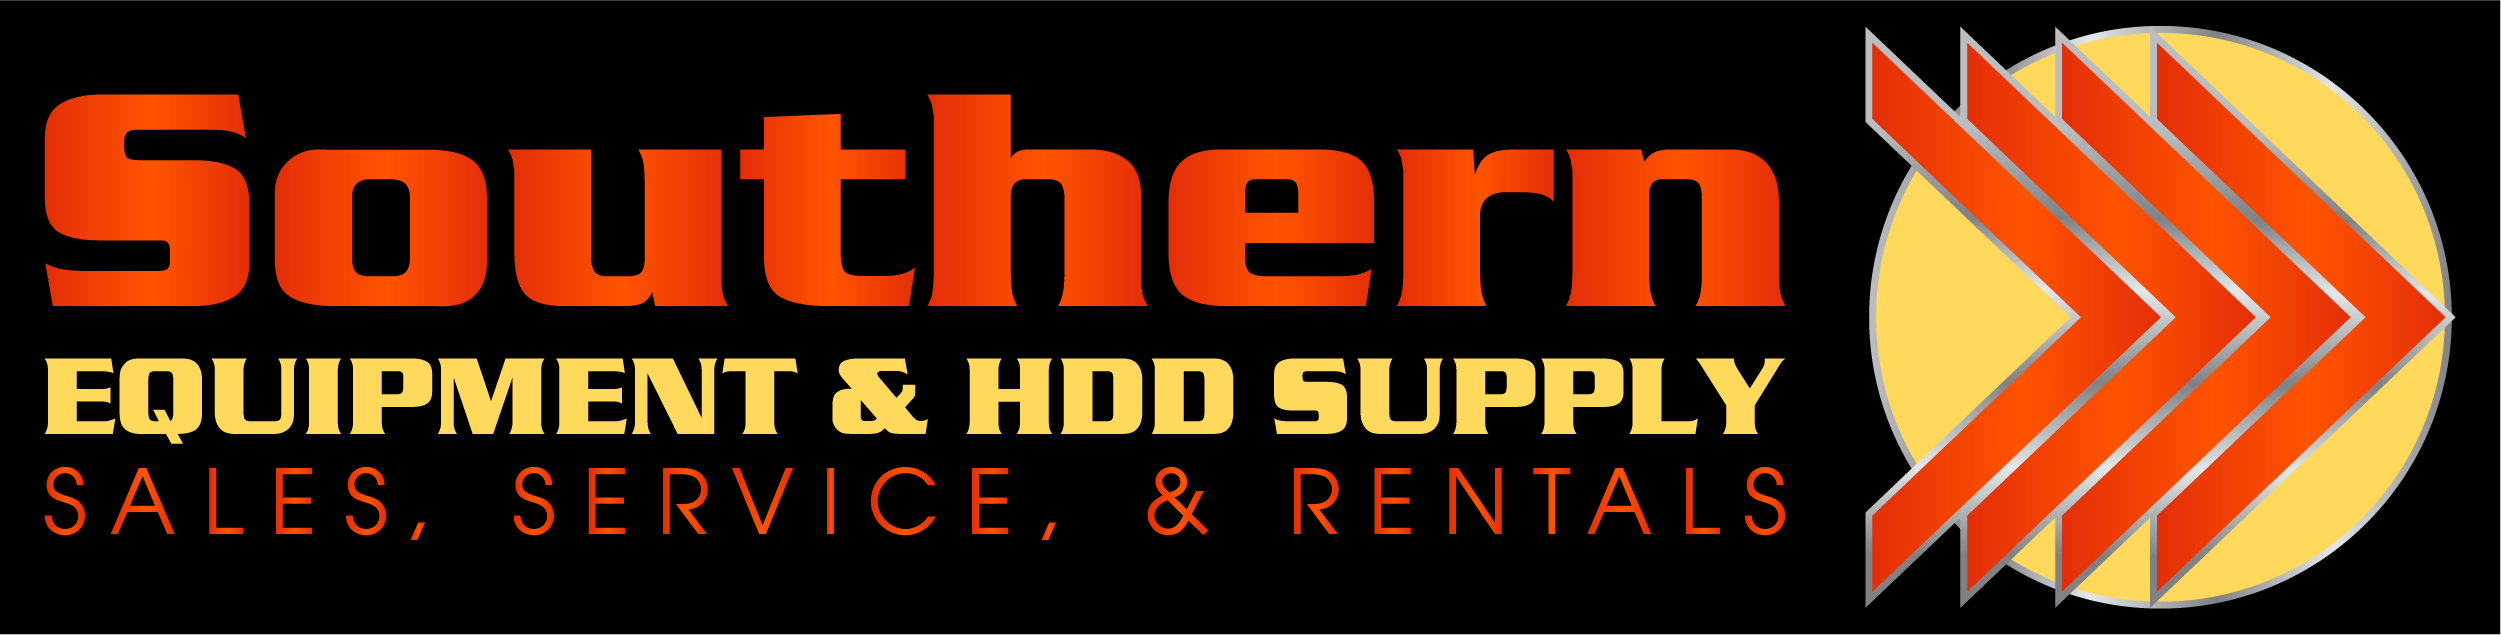 Southern Equipment and HDD Supply Logo